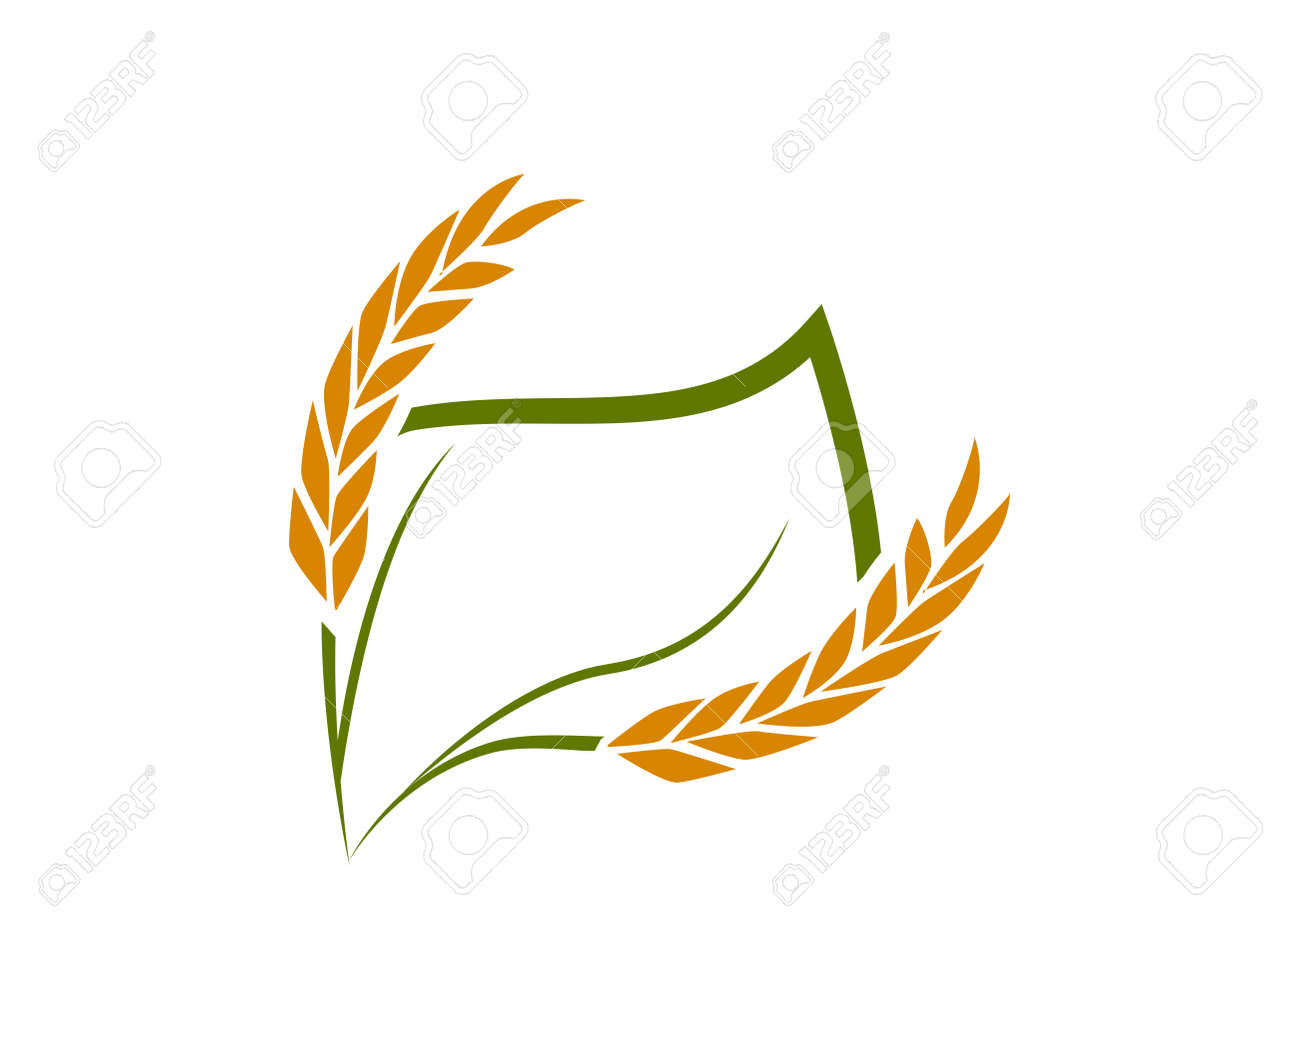 Rice and wheat logo template suitable for businesses and product names. This stylish logo design could be used for different purposes for a company, product, service or for all your ideas. - 166723537